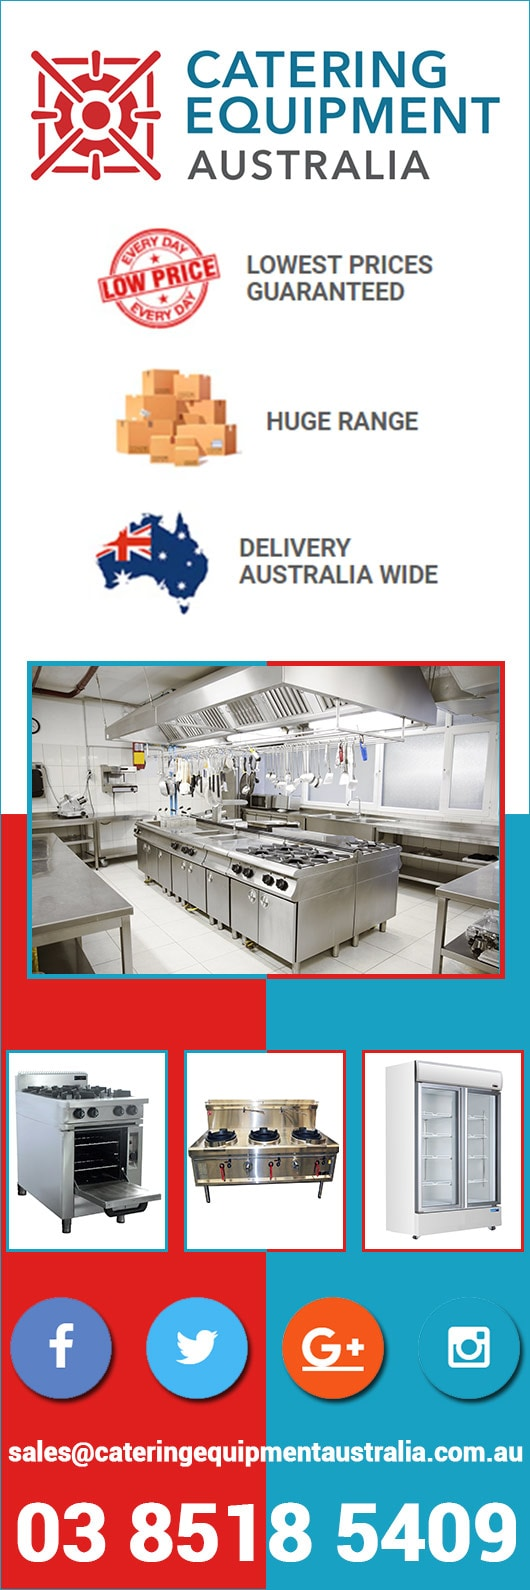 Catering Equipment Australia - Commercial Kitchen Equipment - MELBOURNE